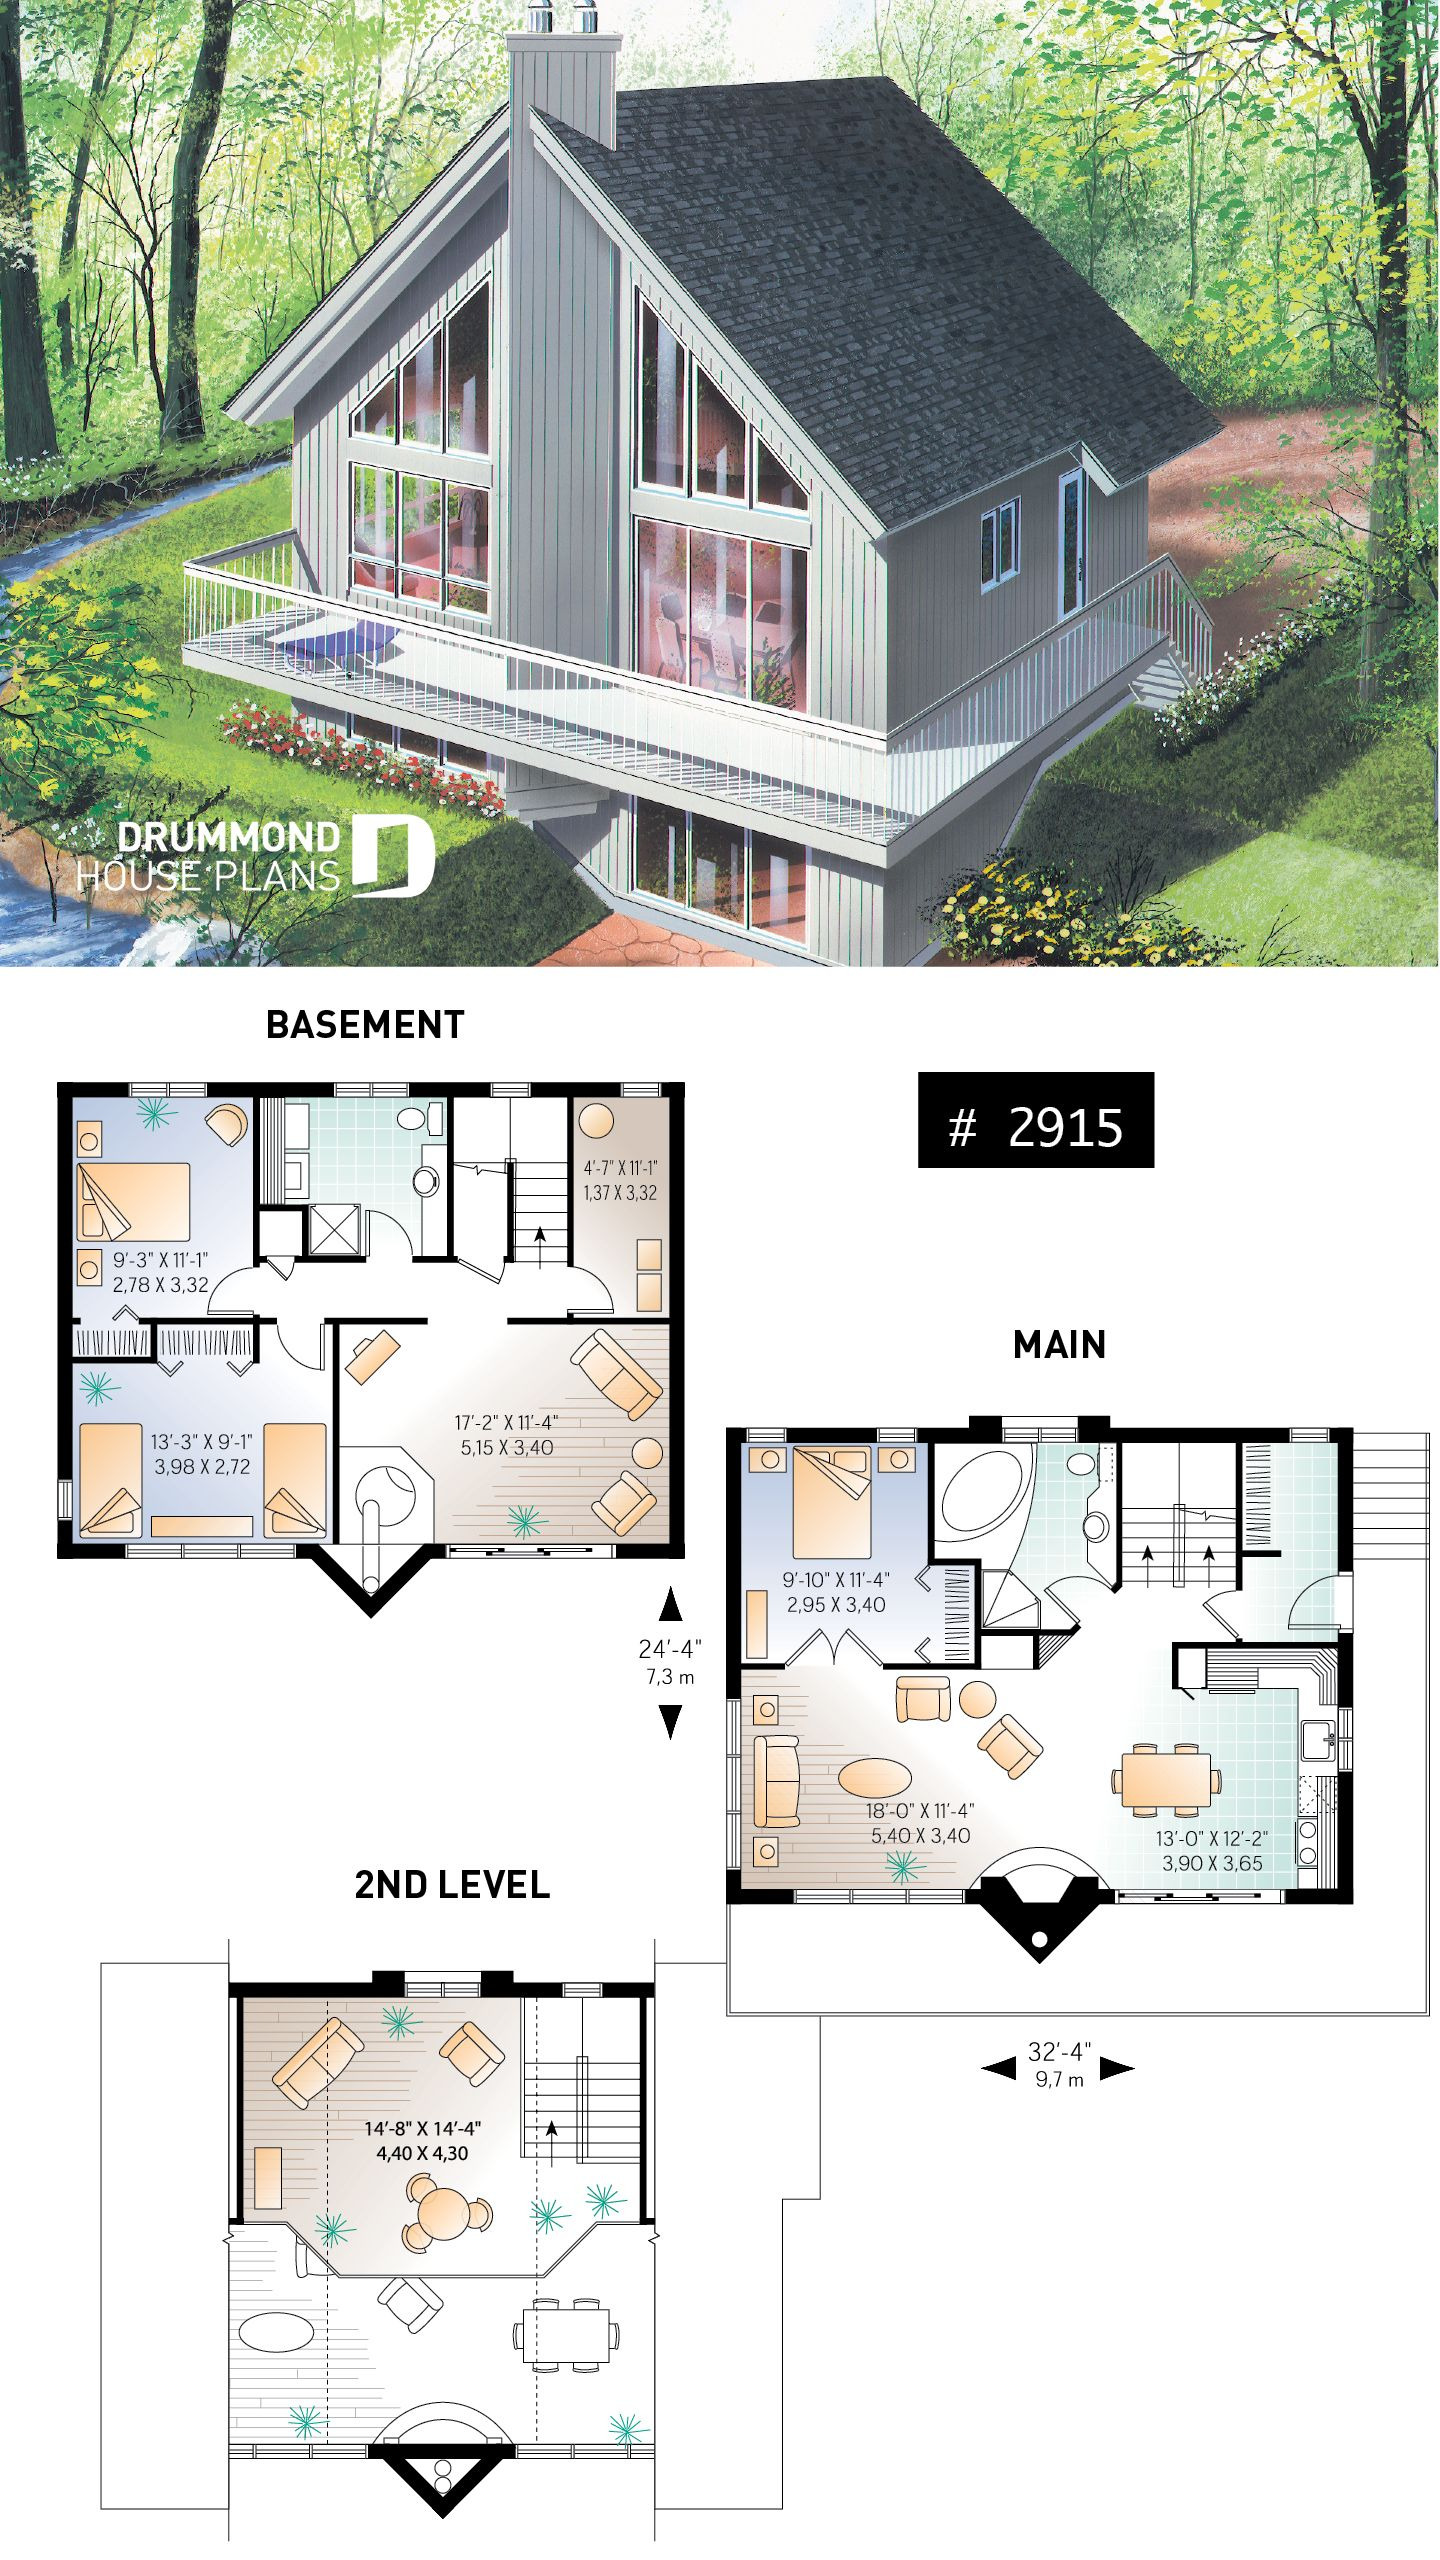 Home Plans with Vaulted Ceilings Inspirational House Plan Skybridge 3 No 2915